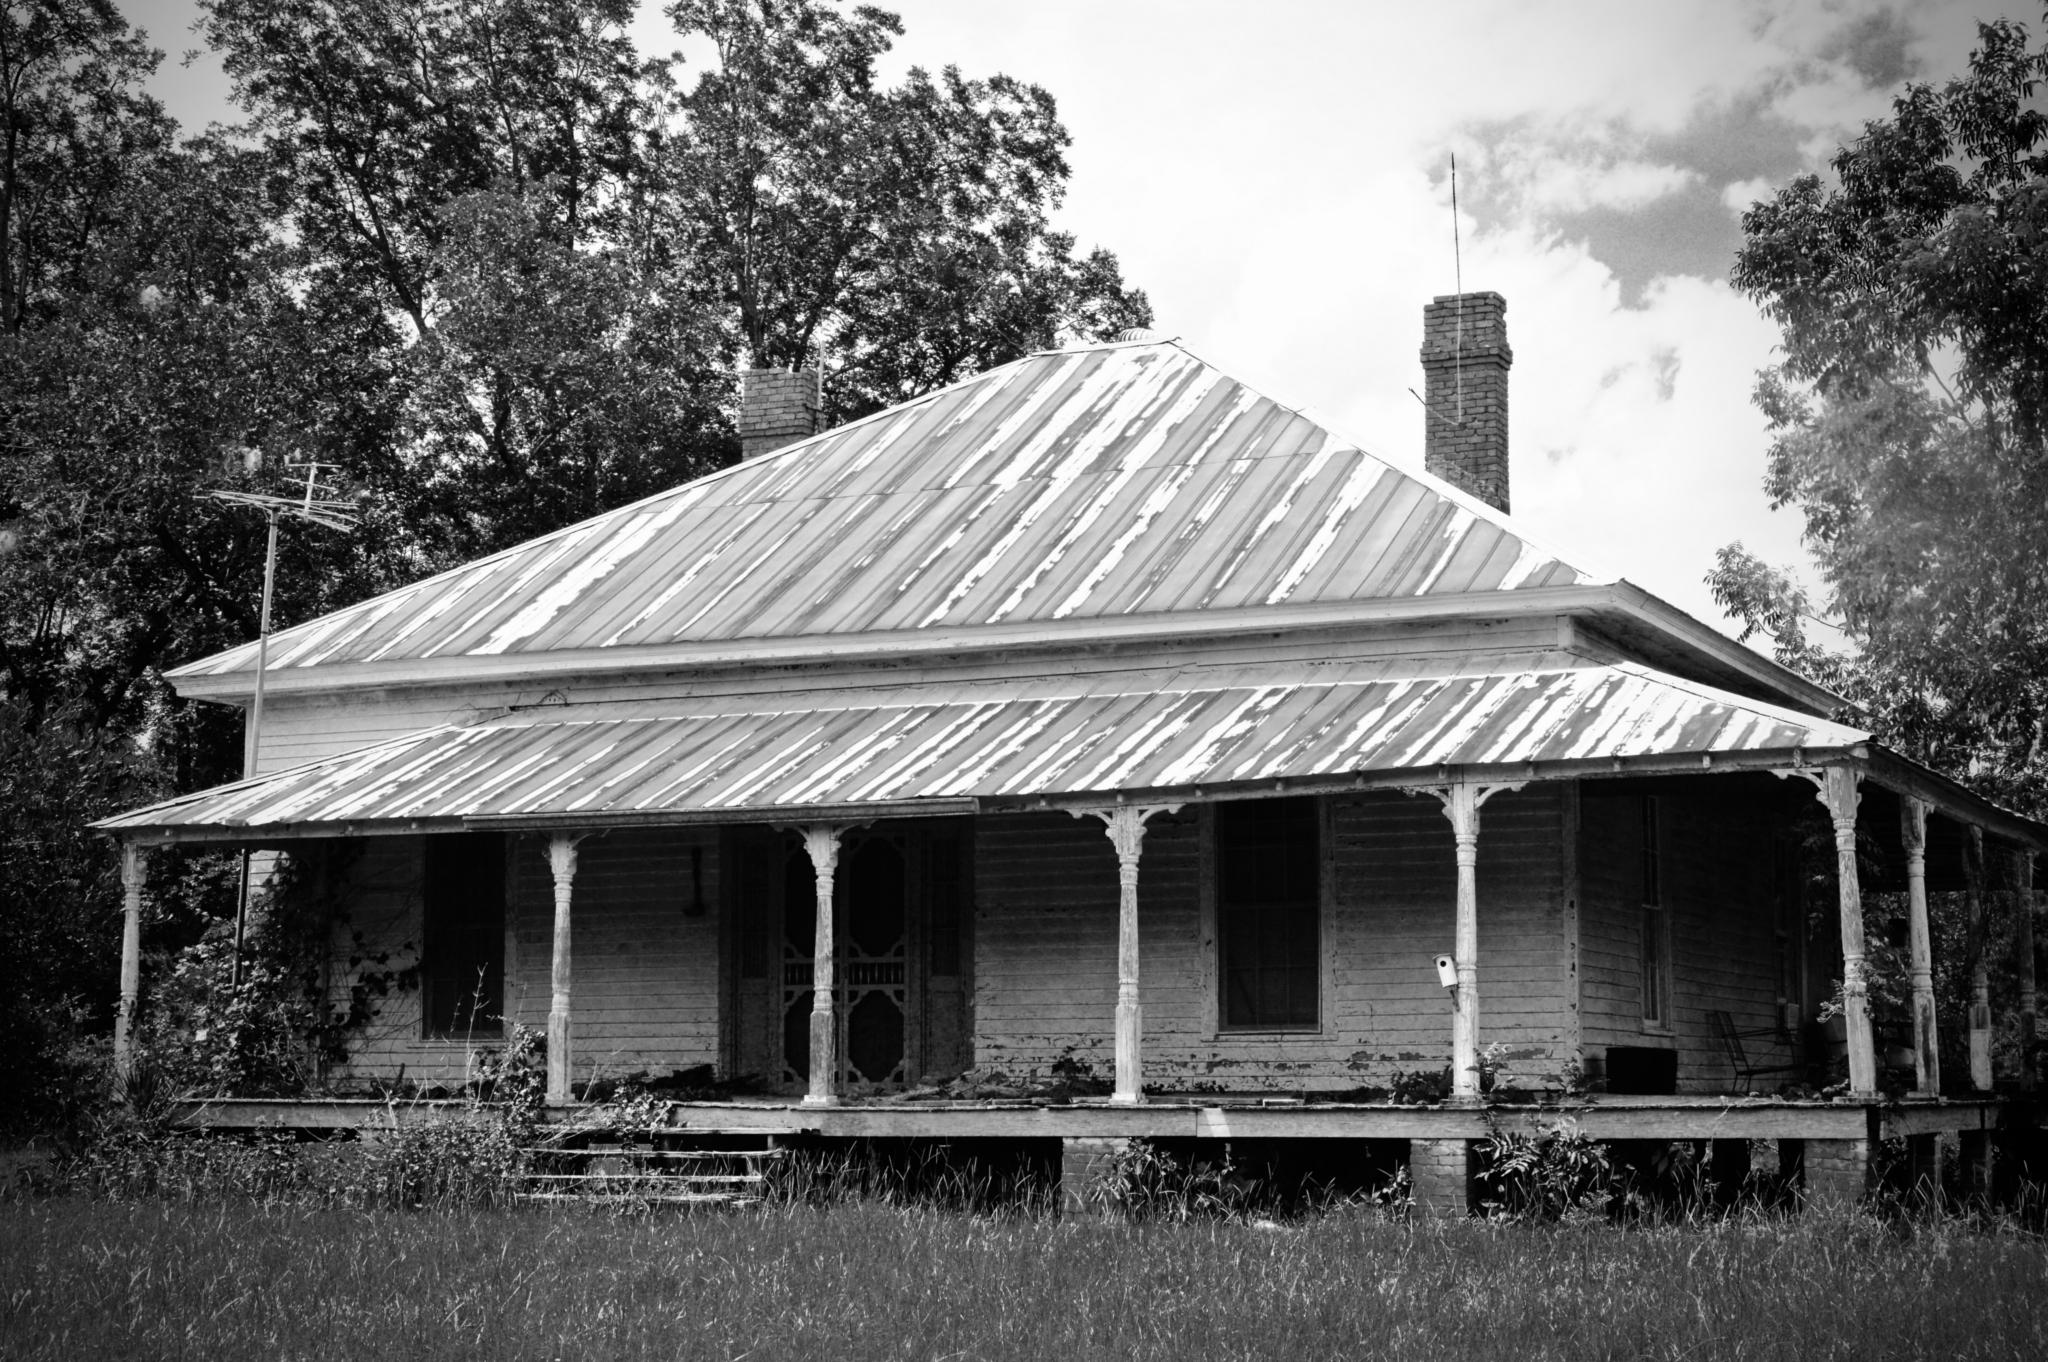 Rural Old Florida Cracker House by Travelwithnise